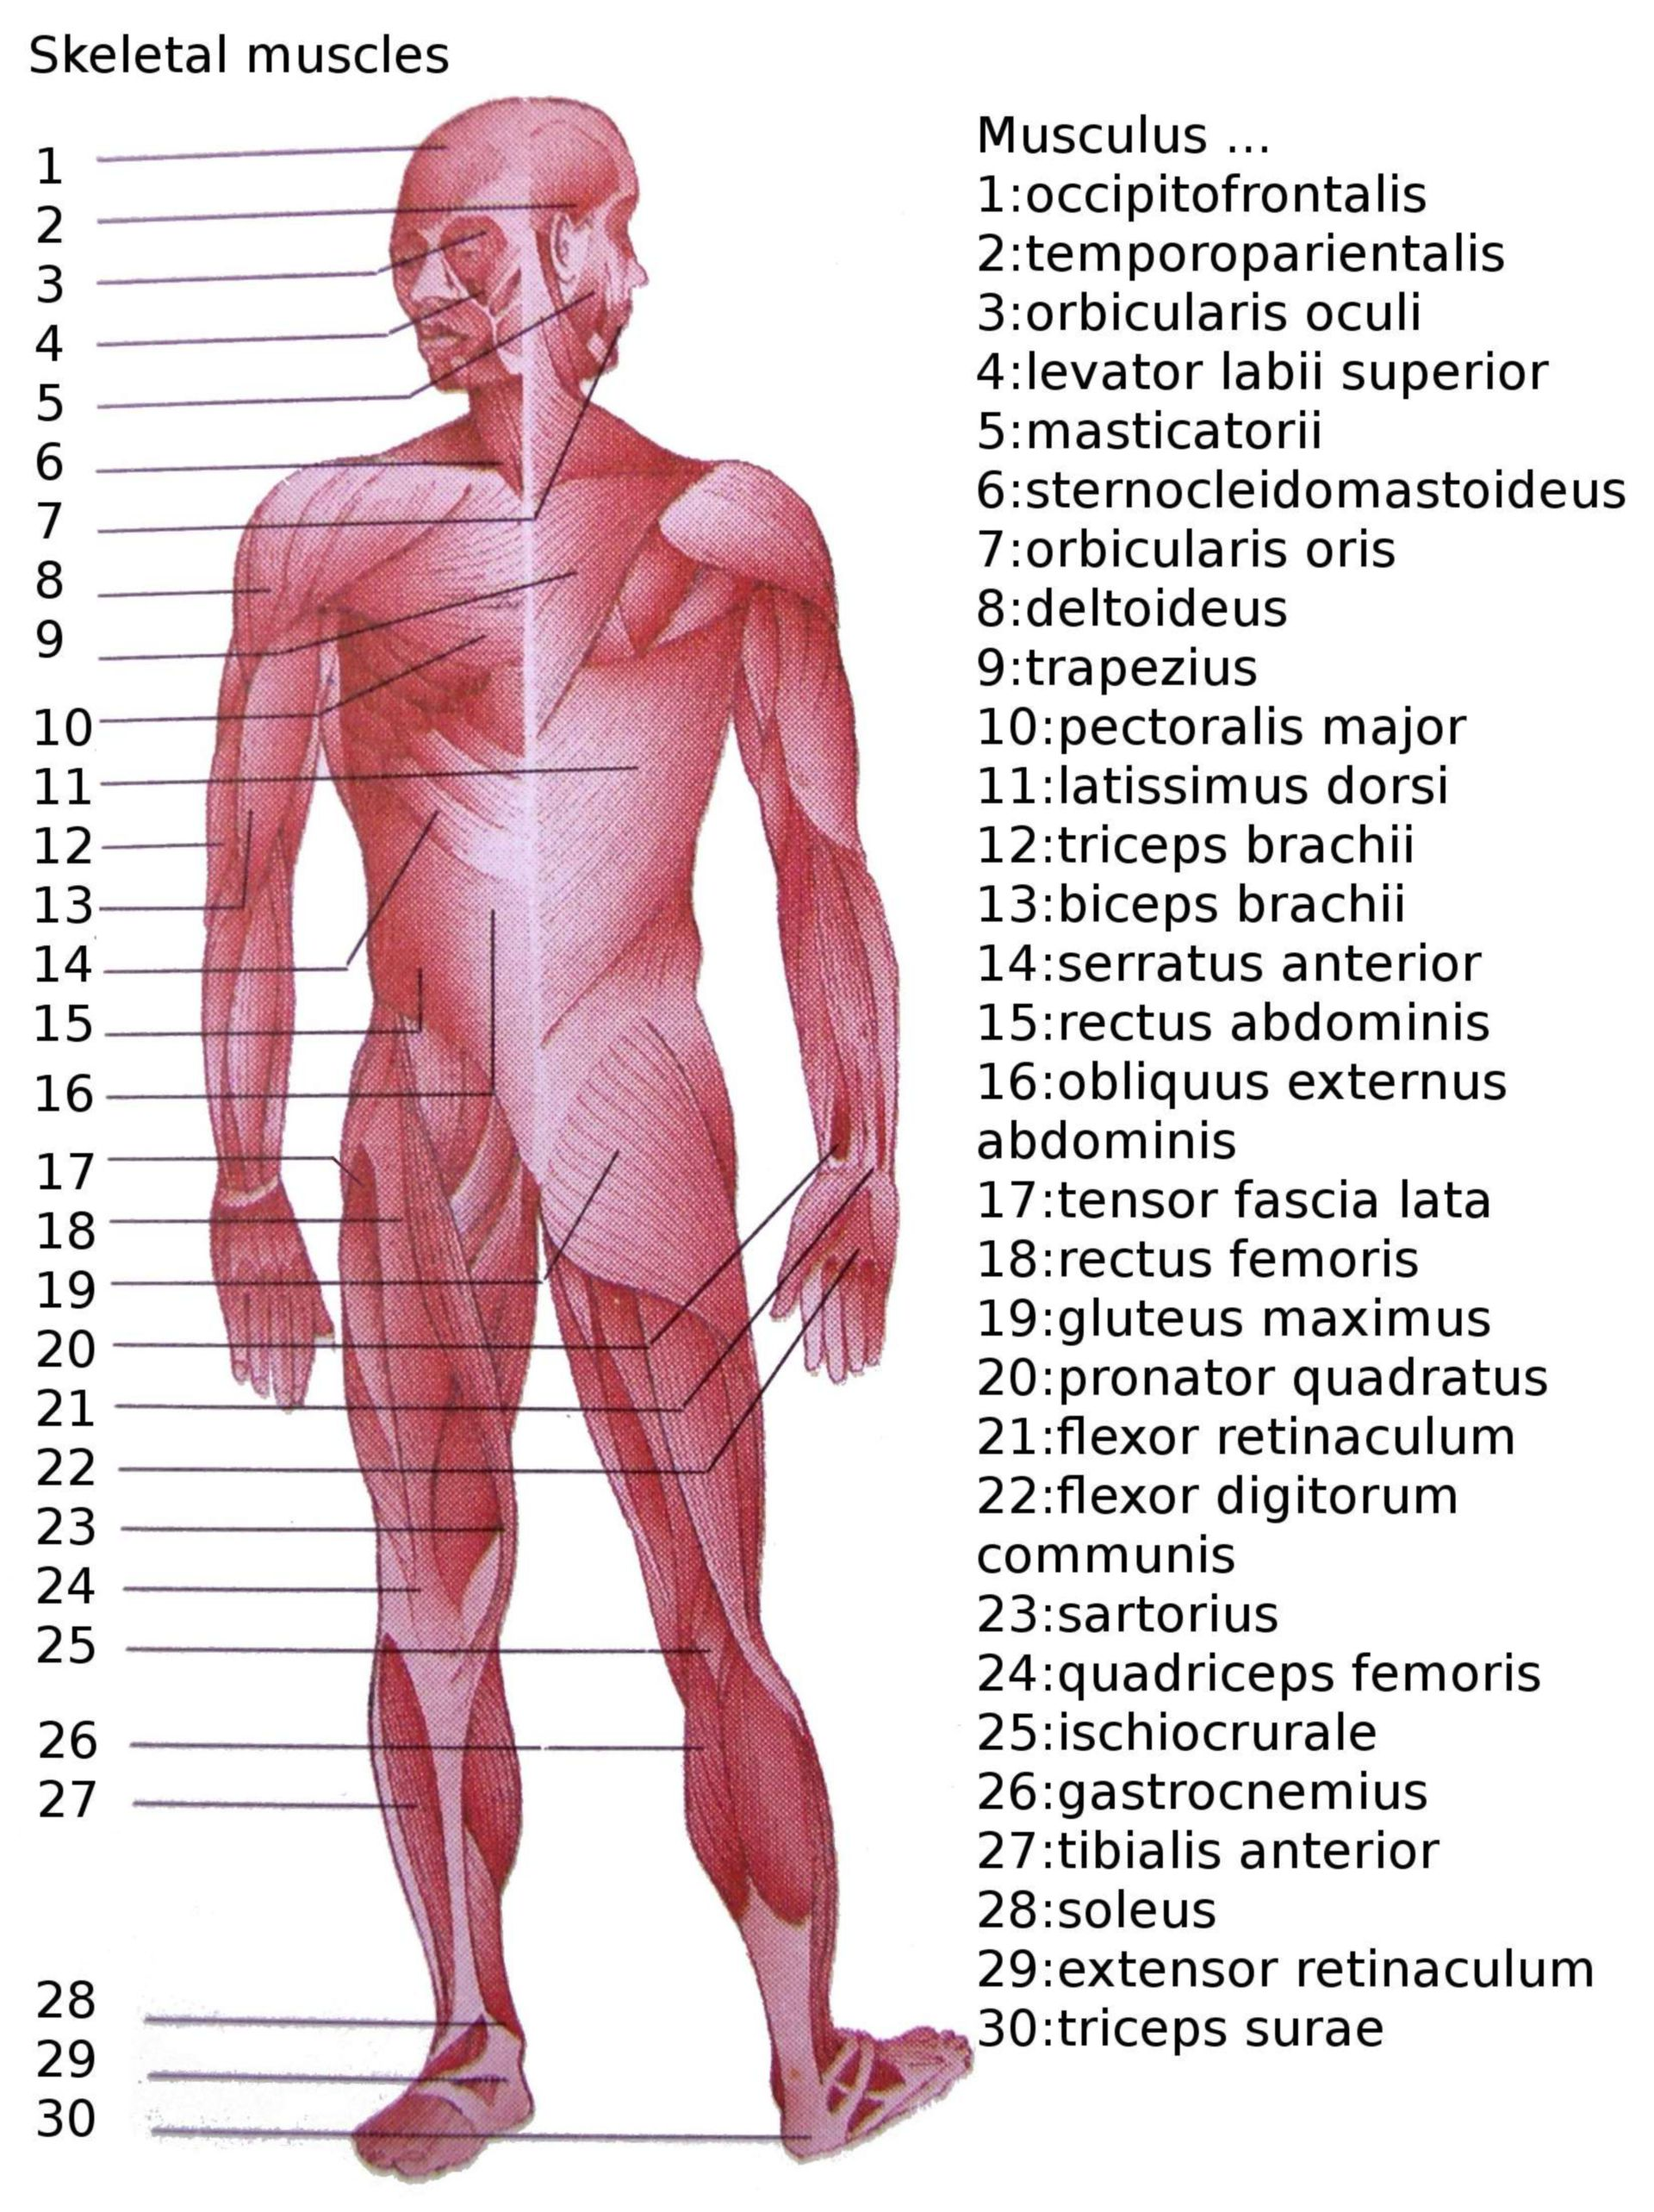 Skeletal muscles of humans (overview diagram)